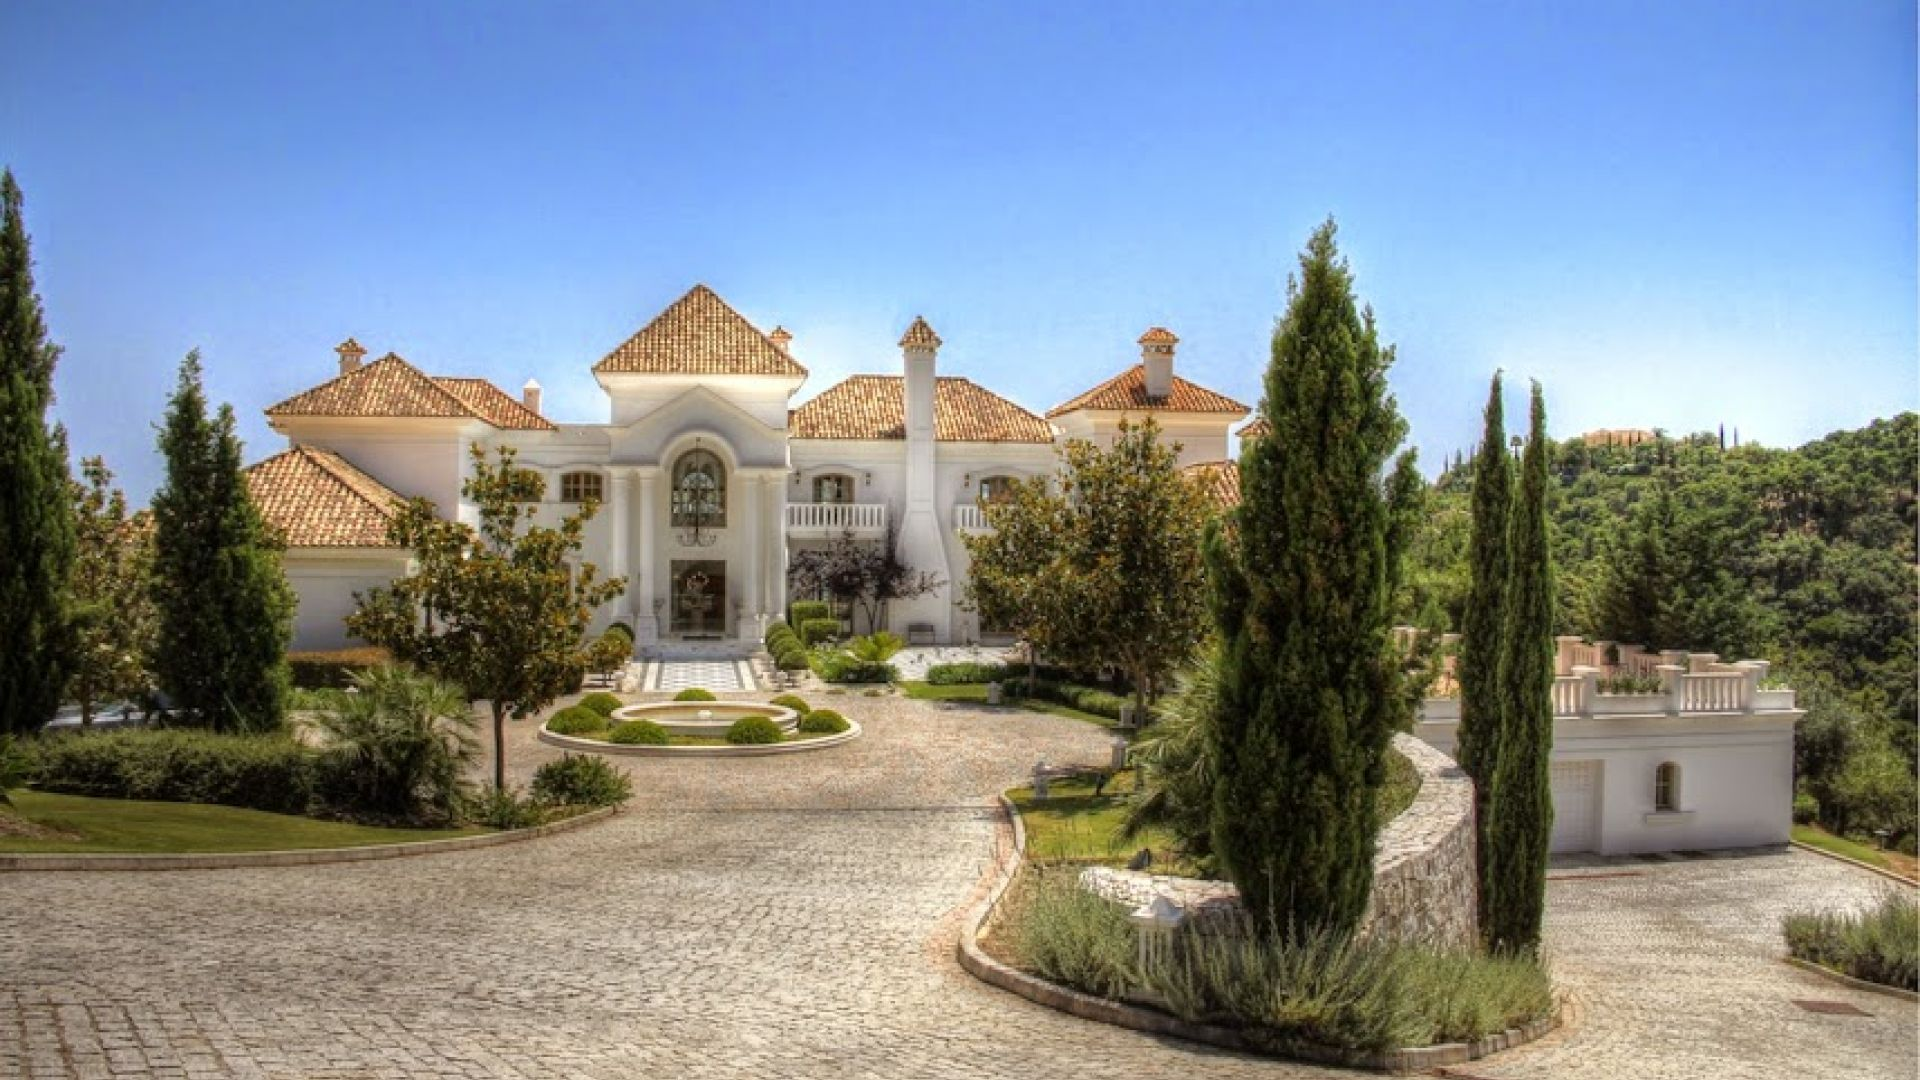 Property Of Impressive, spacious, elegant, mansion in La Zagaleta